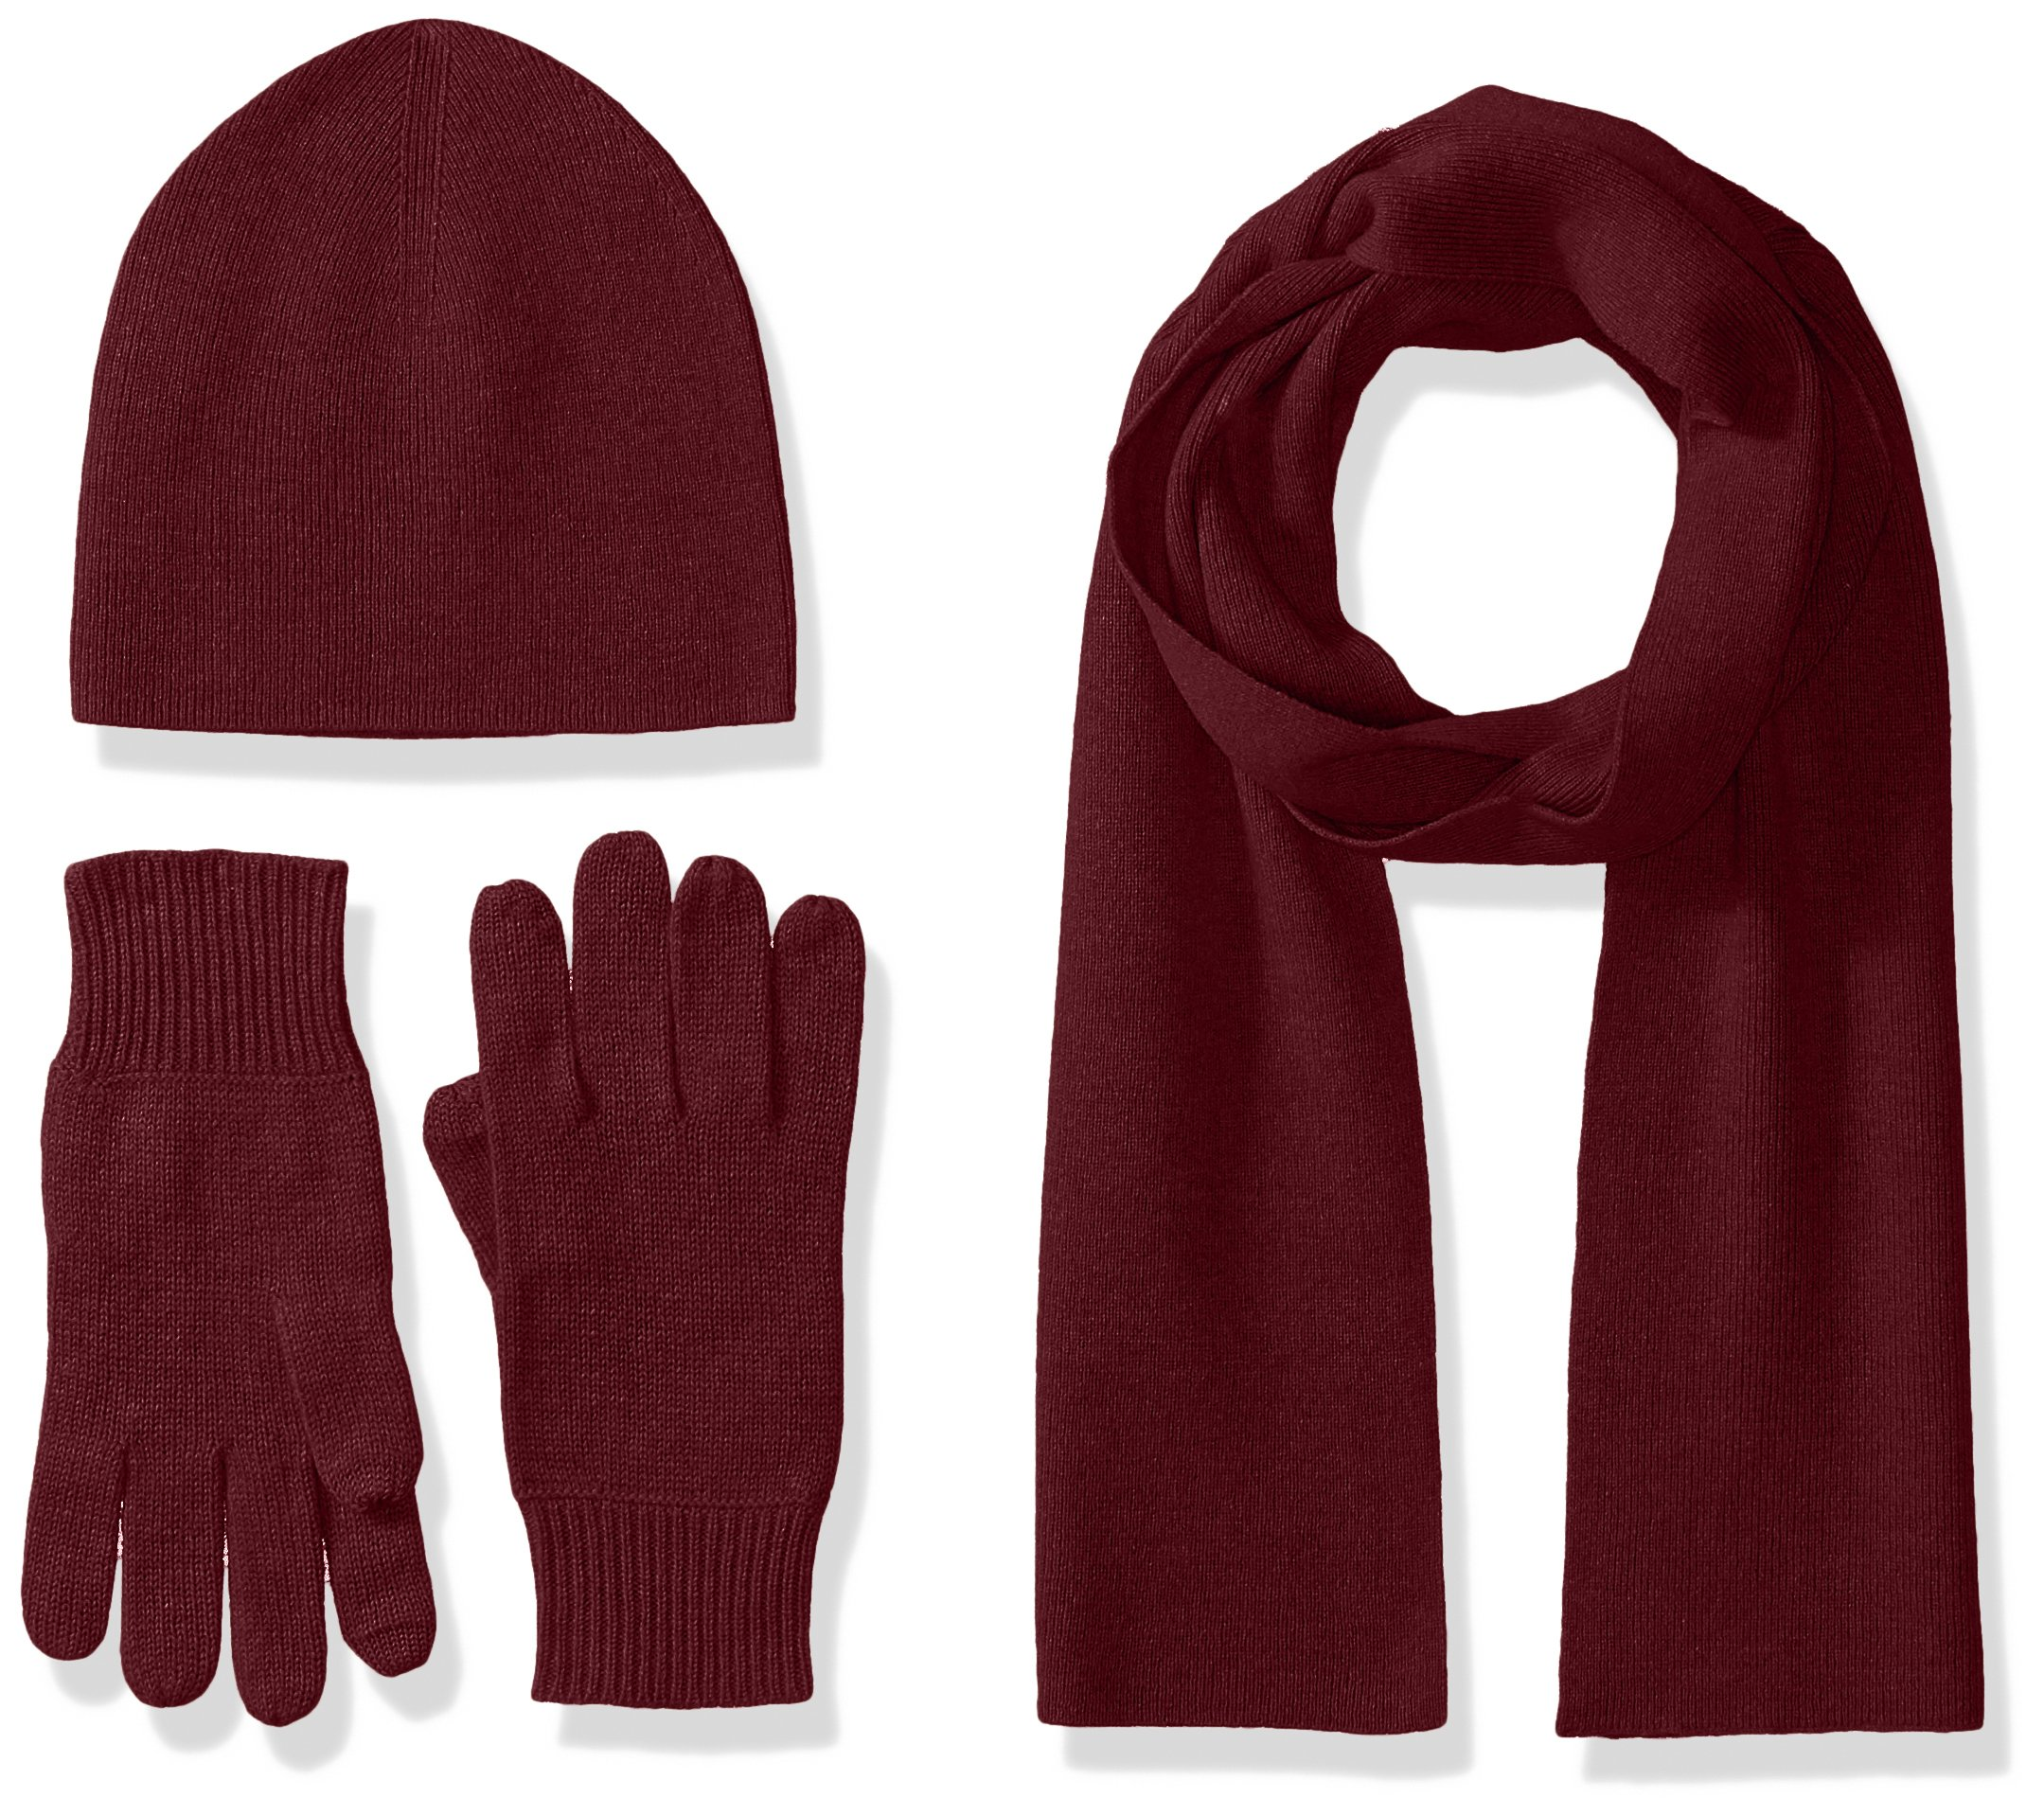 Williams Cashmere Men's 3pc Value Gift Box Set - Men's Texting Gloves, Hat, & Scarf, wine, One Size